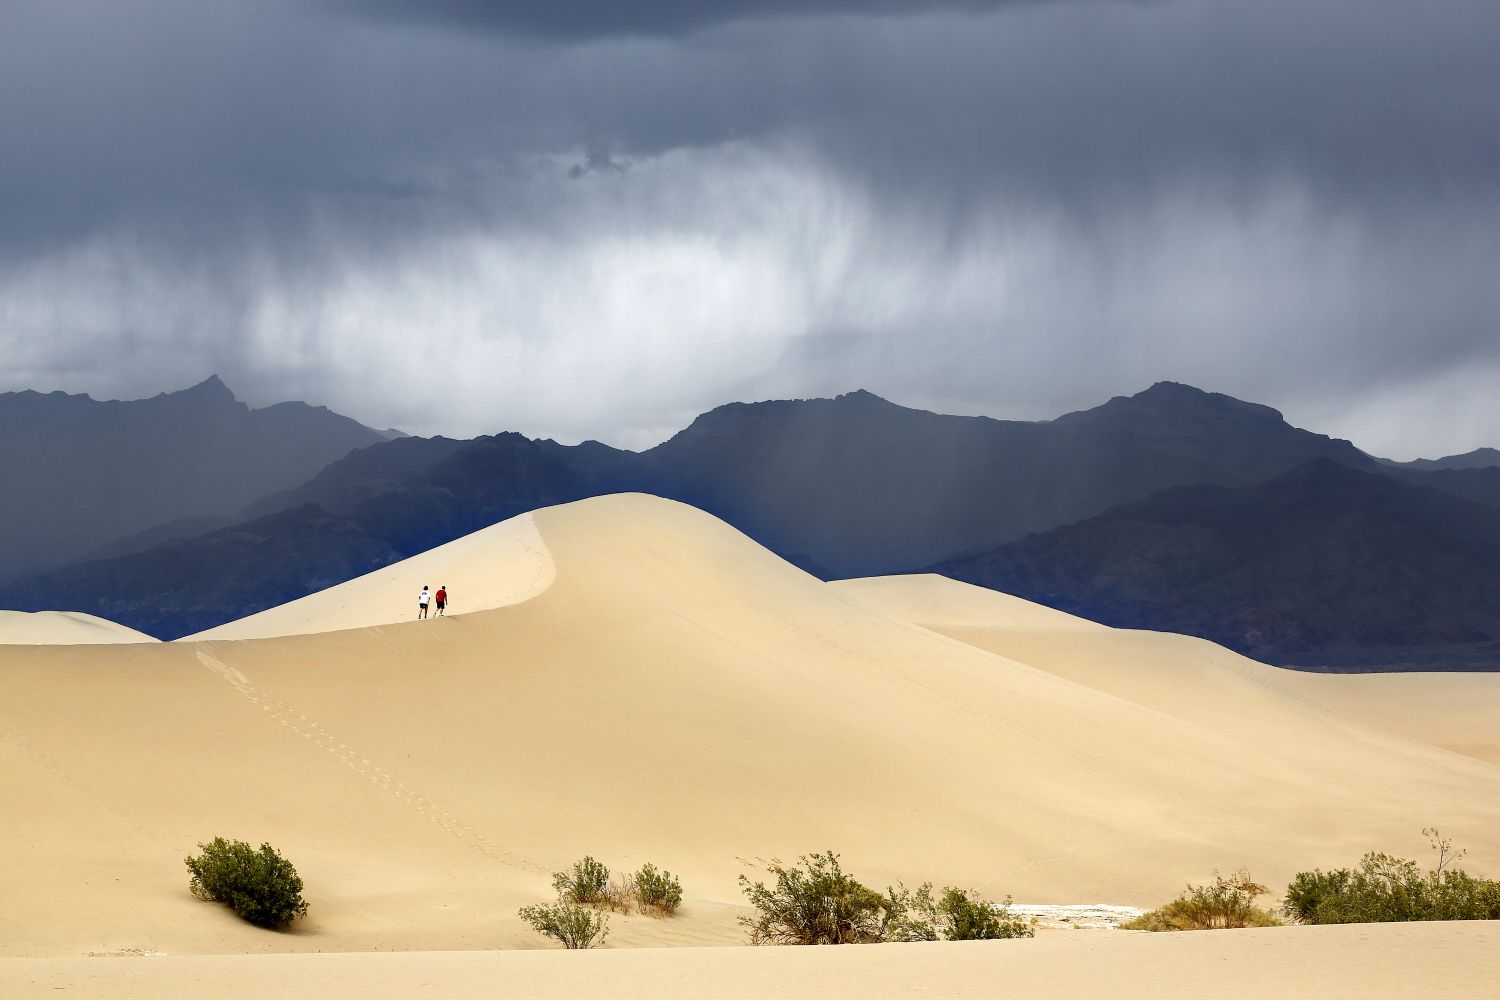 Storm approaching Mesquite Flat Sand Dunes, Death Valley